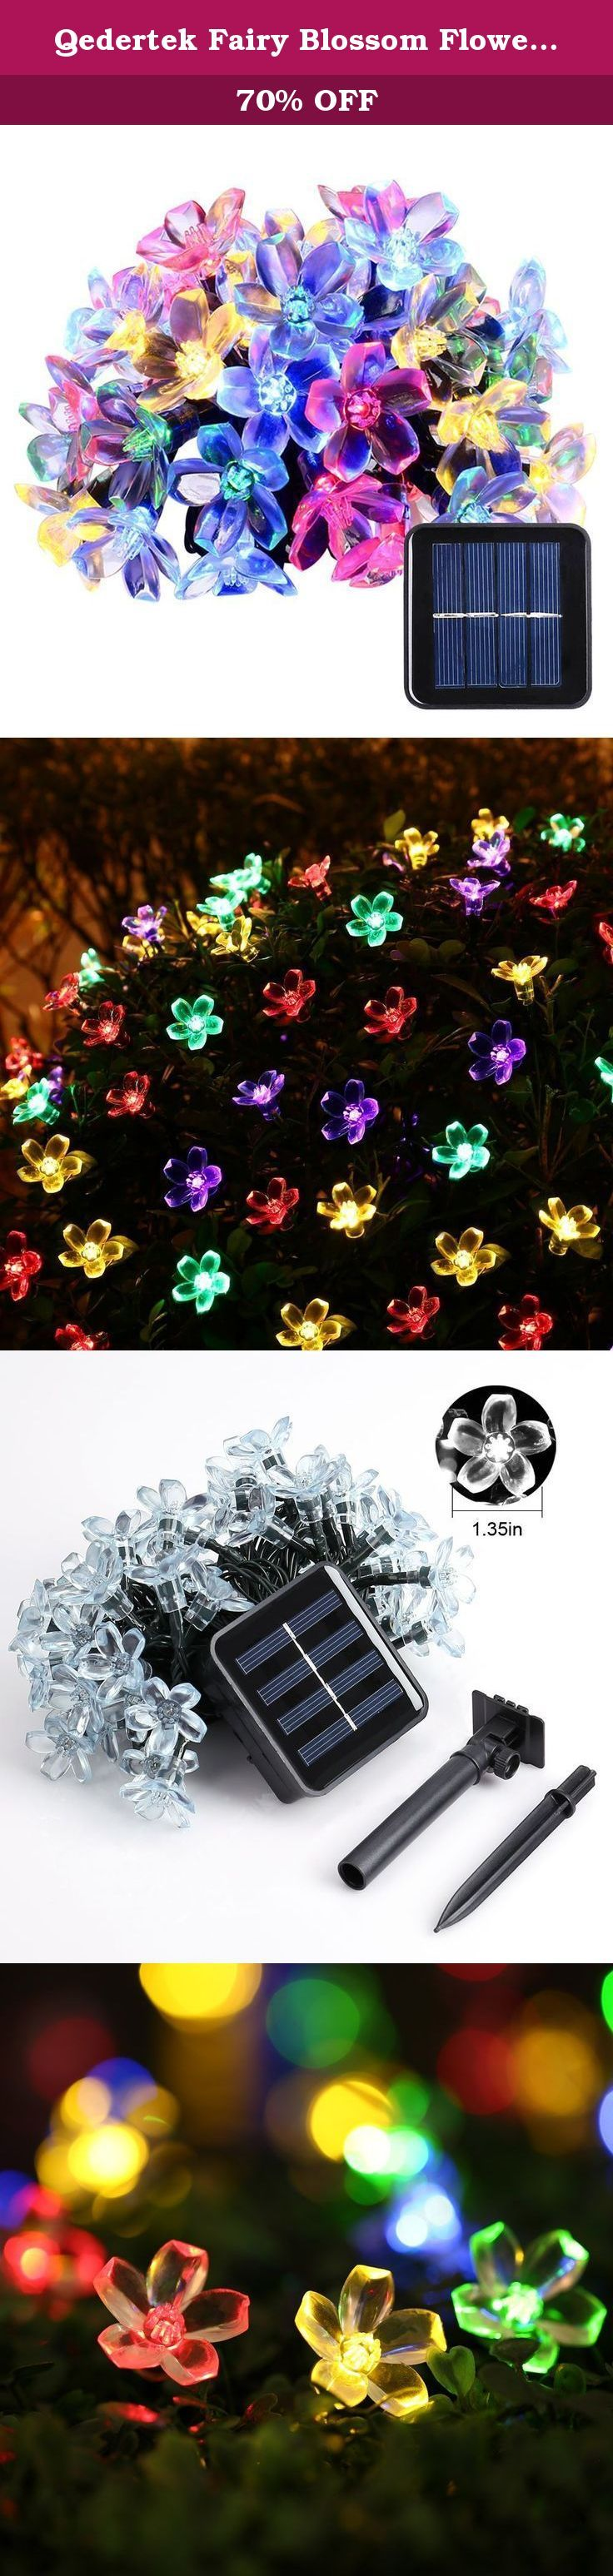 Qedertek Fairy Blossom Flower Solar String Lights 21ft 50 LED